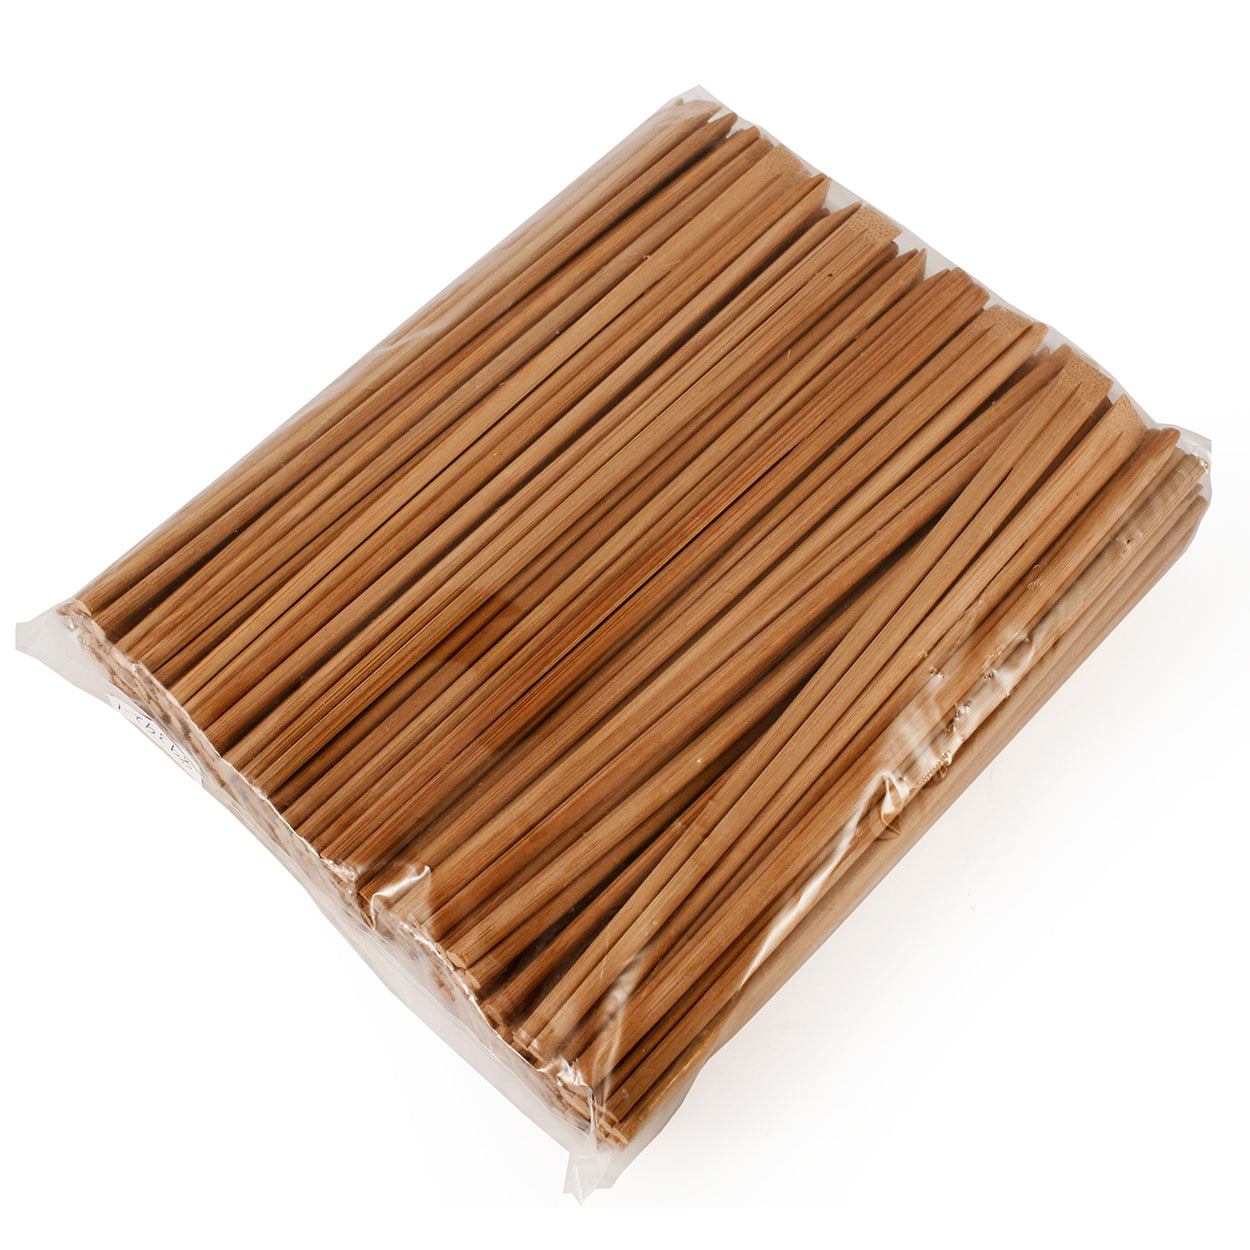 "8.25"" Disposable Carbonized Slanted Tip Bamboo Chopsticks - 100 Pairs / Pack"